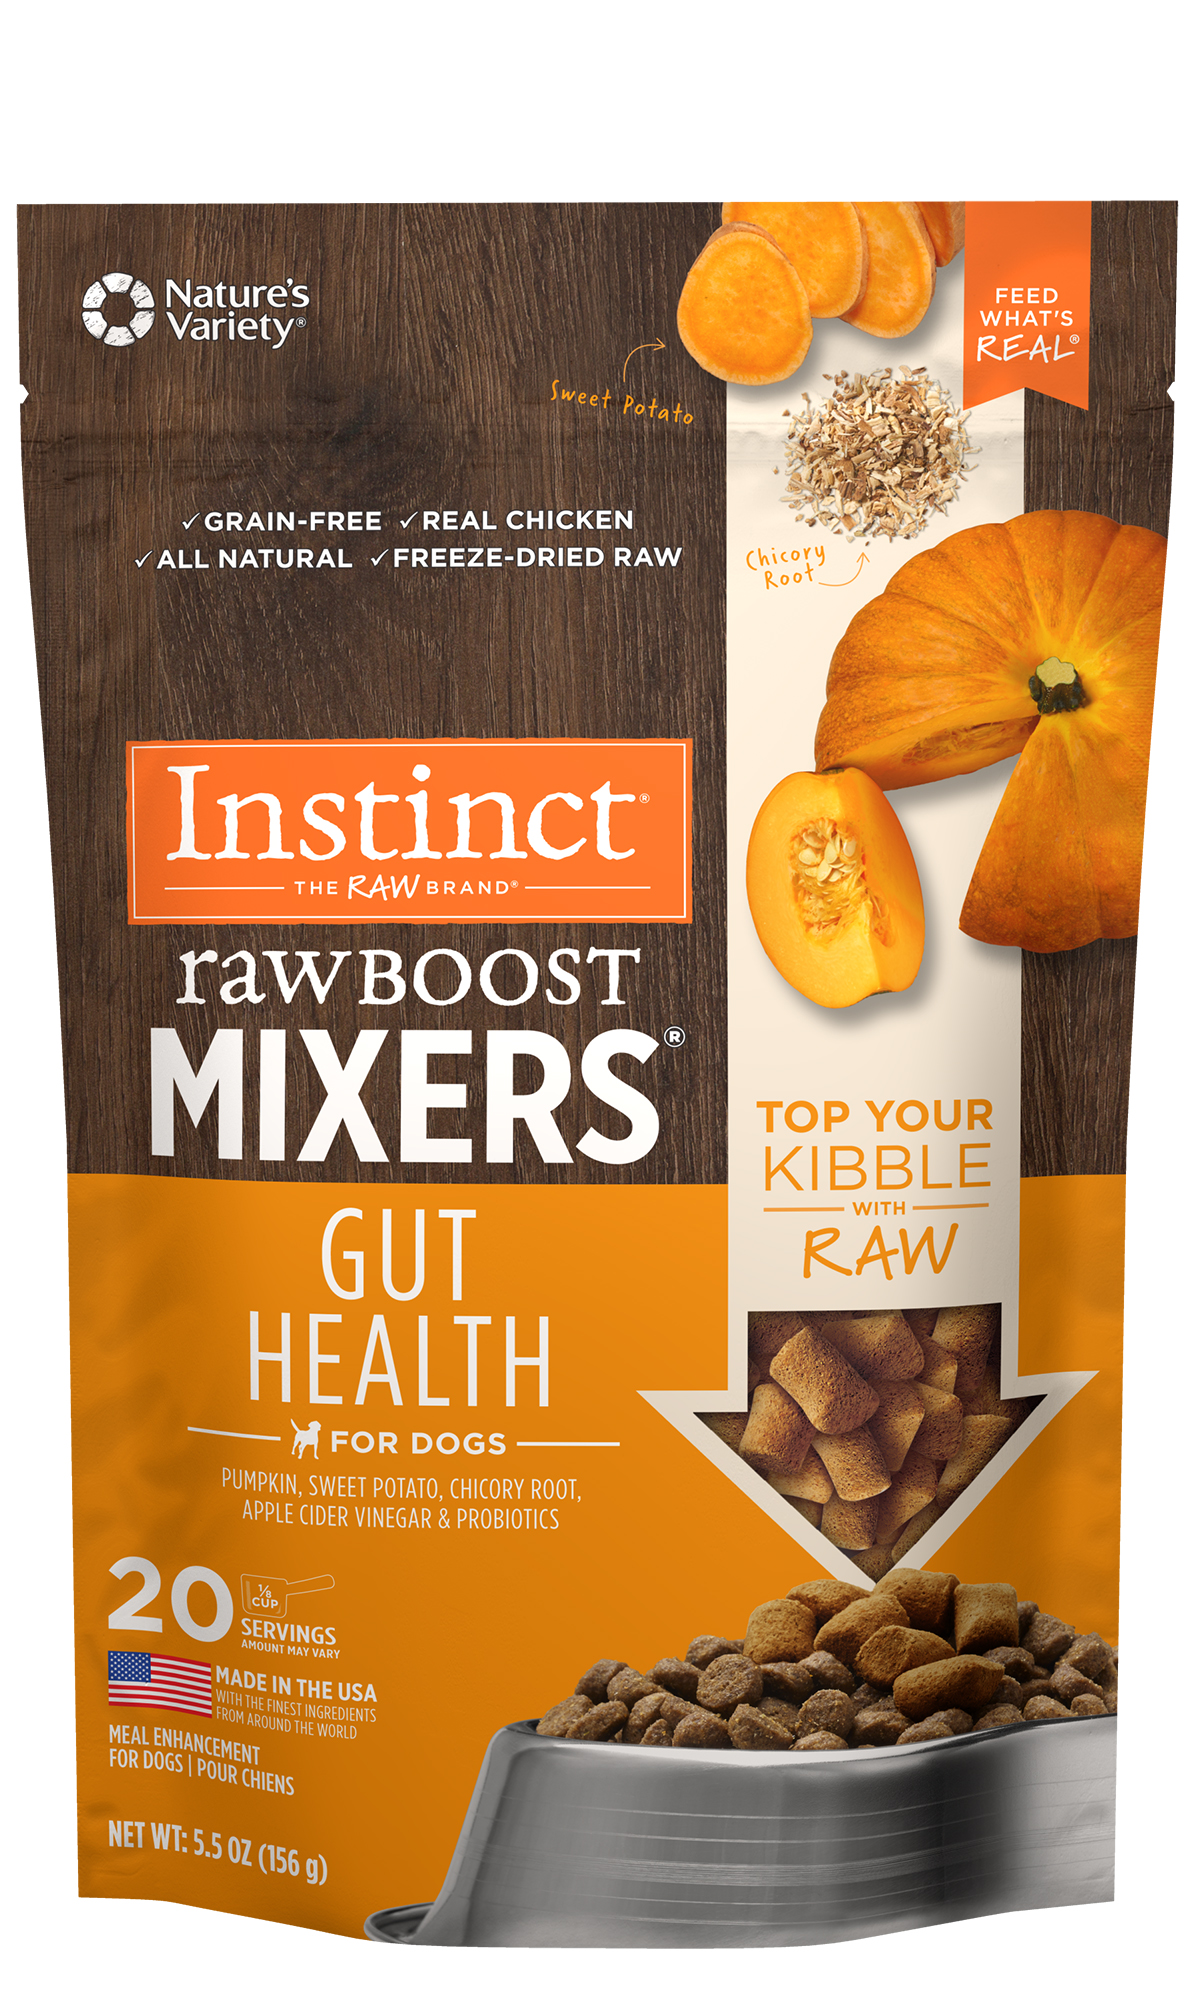 Instinct by Nature's Variety Raw Boost Mixers Gut Health, 5.5-oz